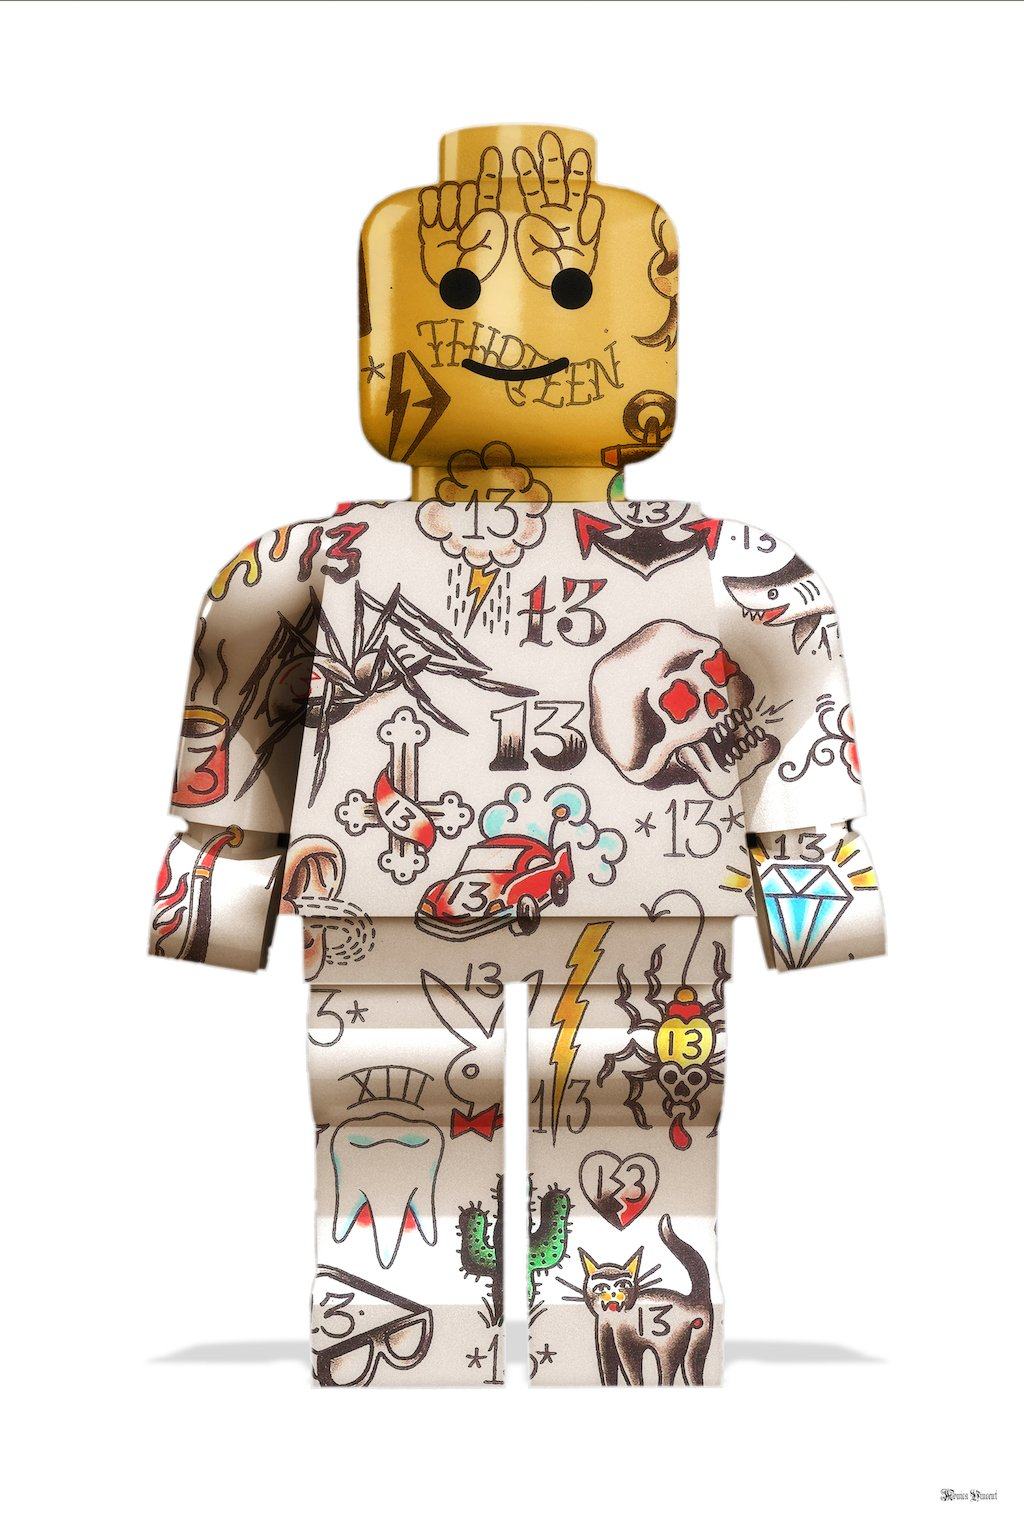 Graffiti Lego Man (White Background) - Large  by Monica Vincent